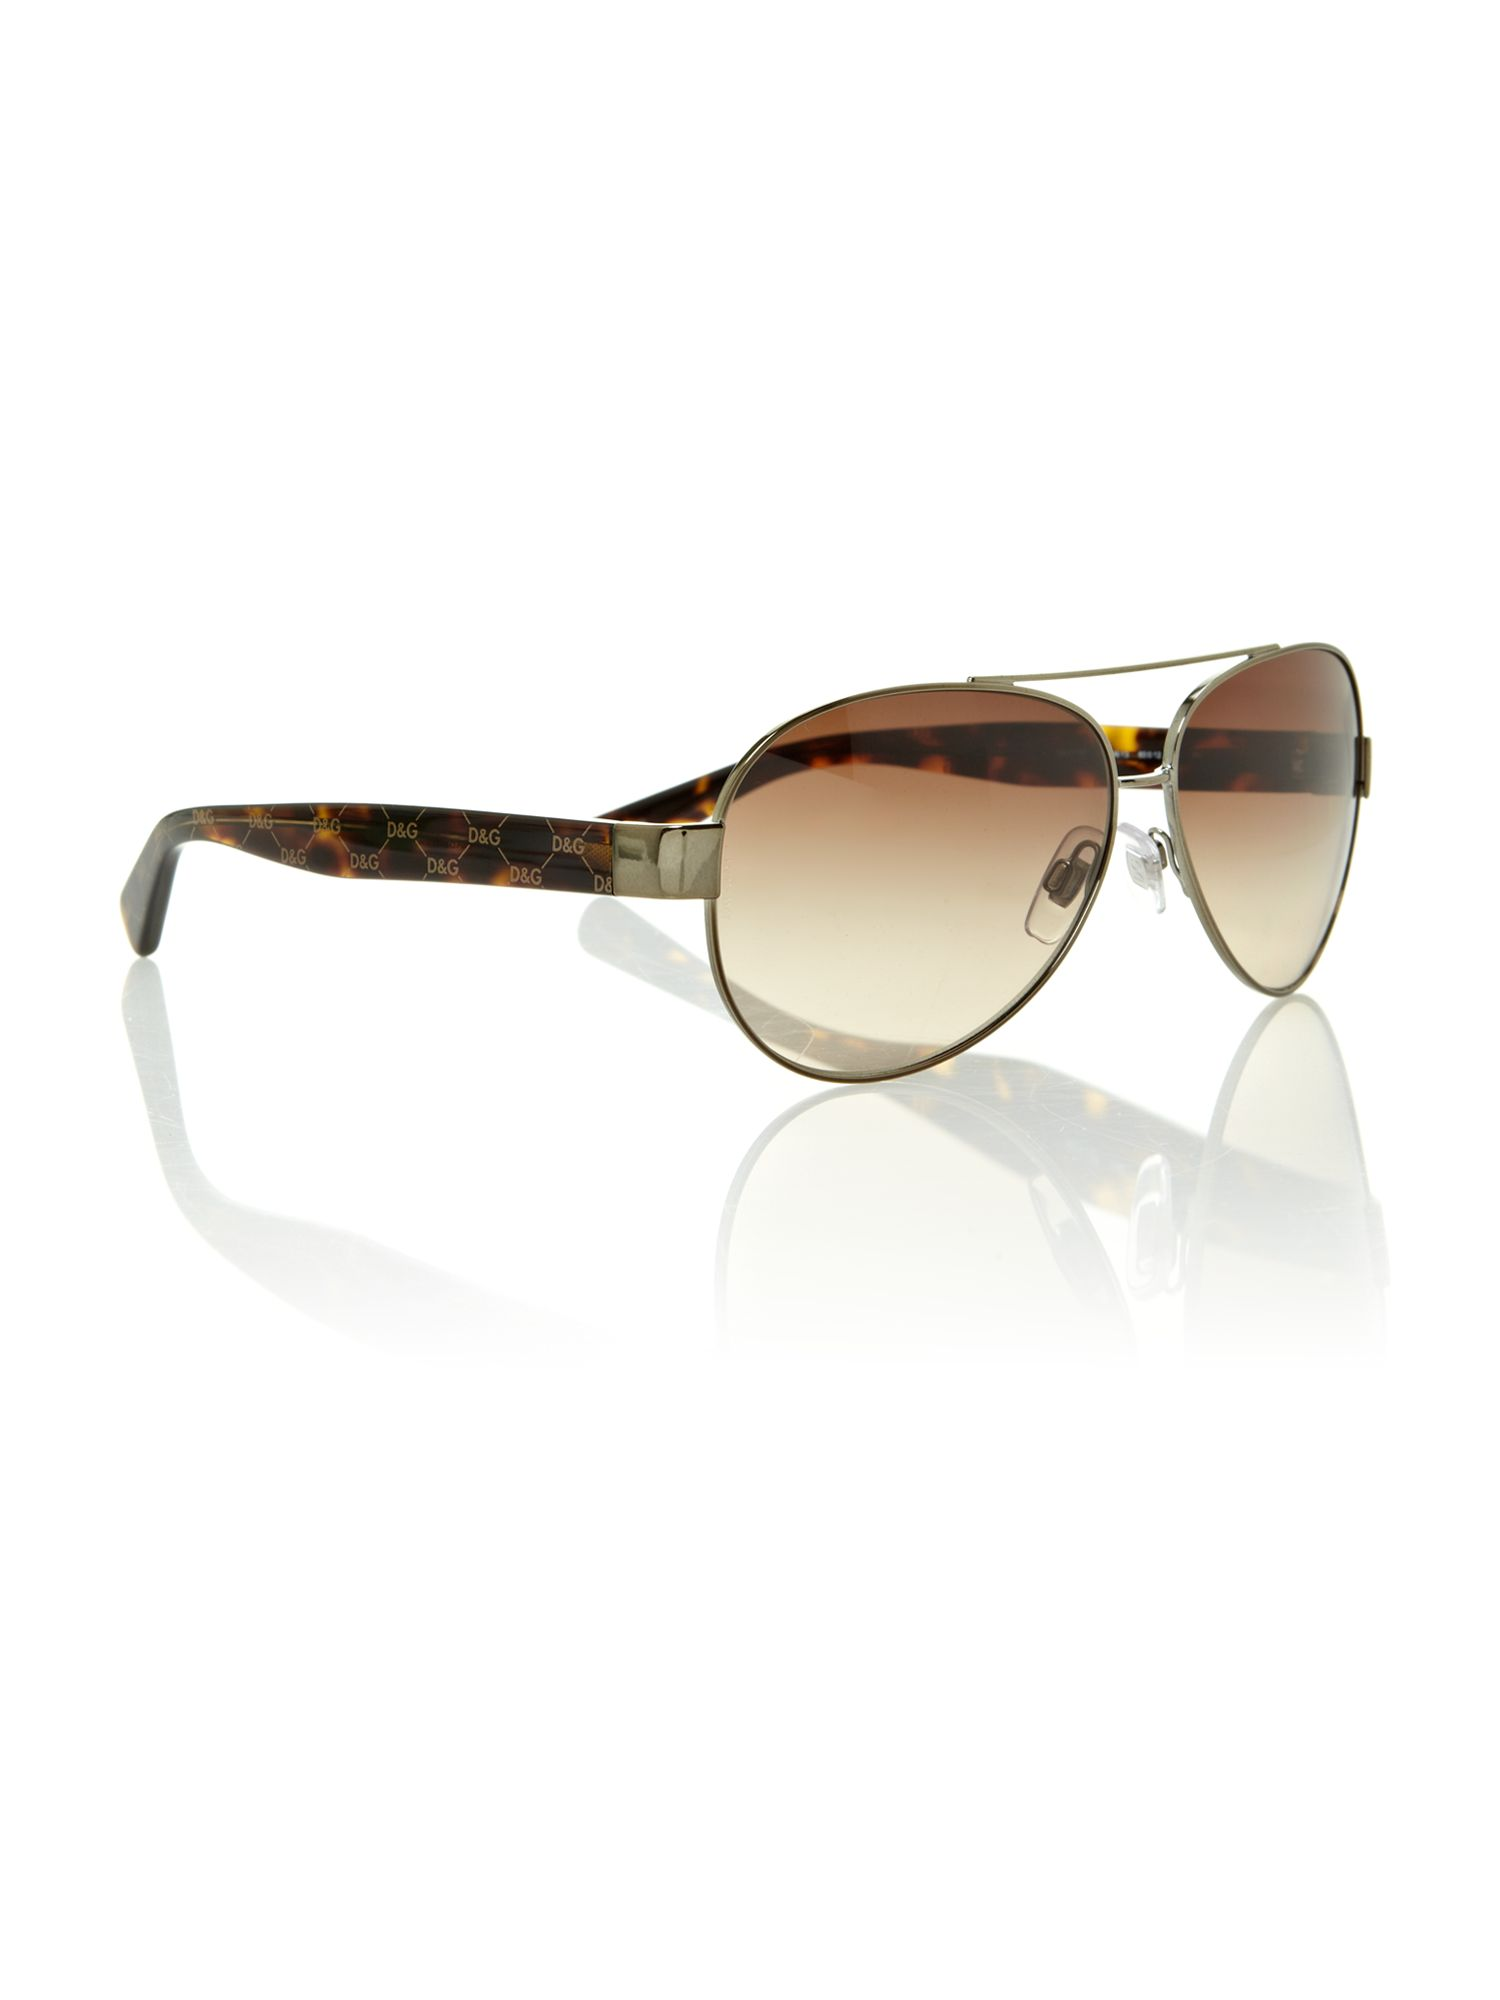 Ladies DG2118P sunglasses